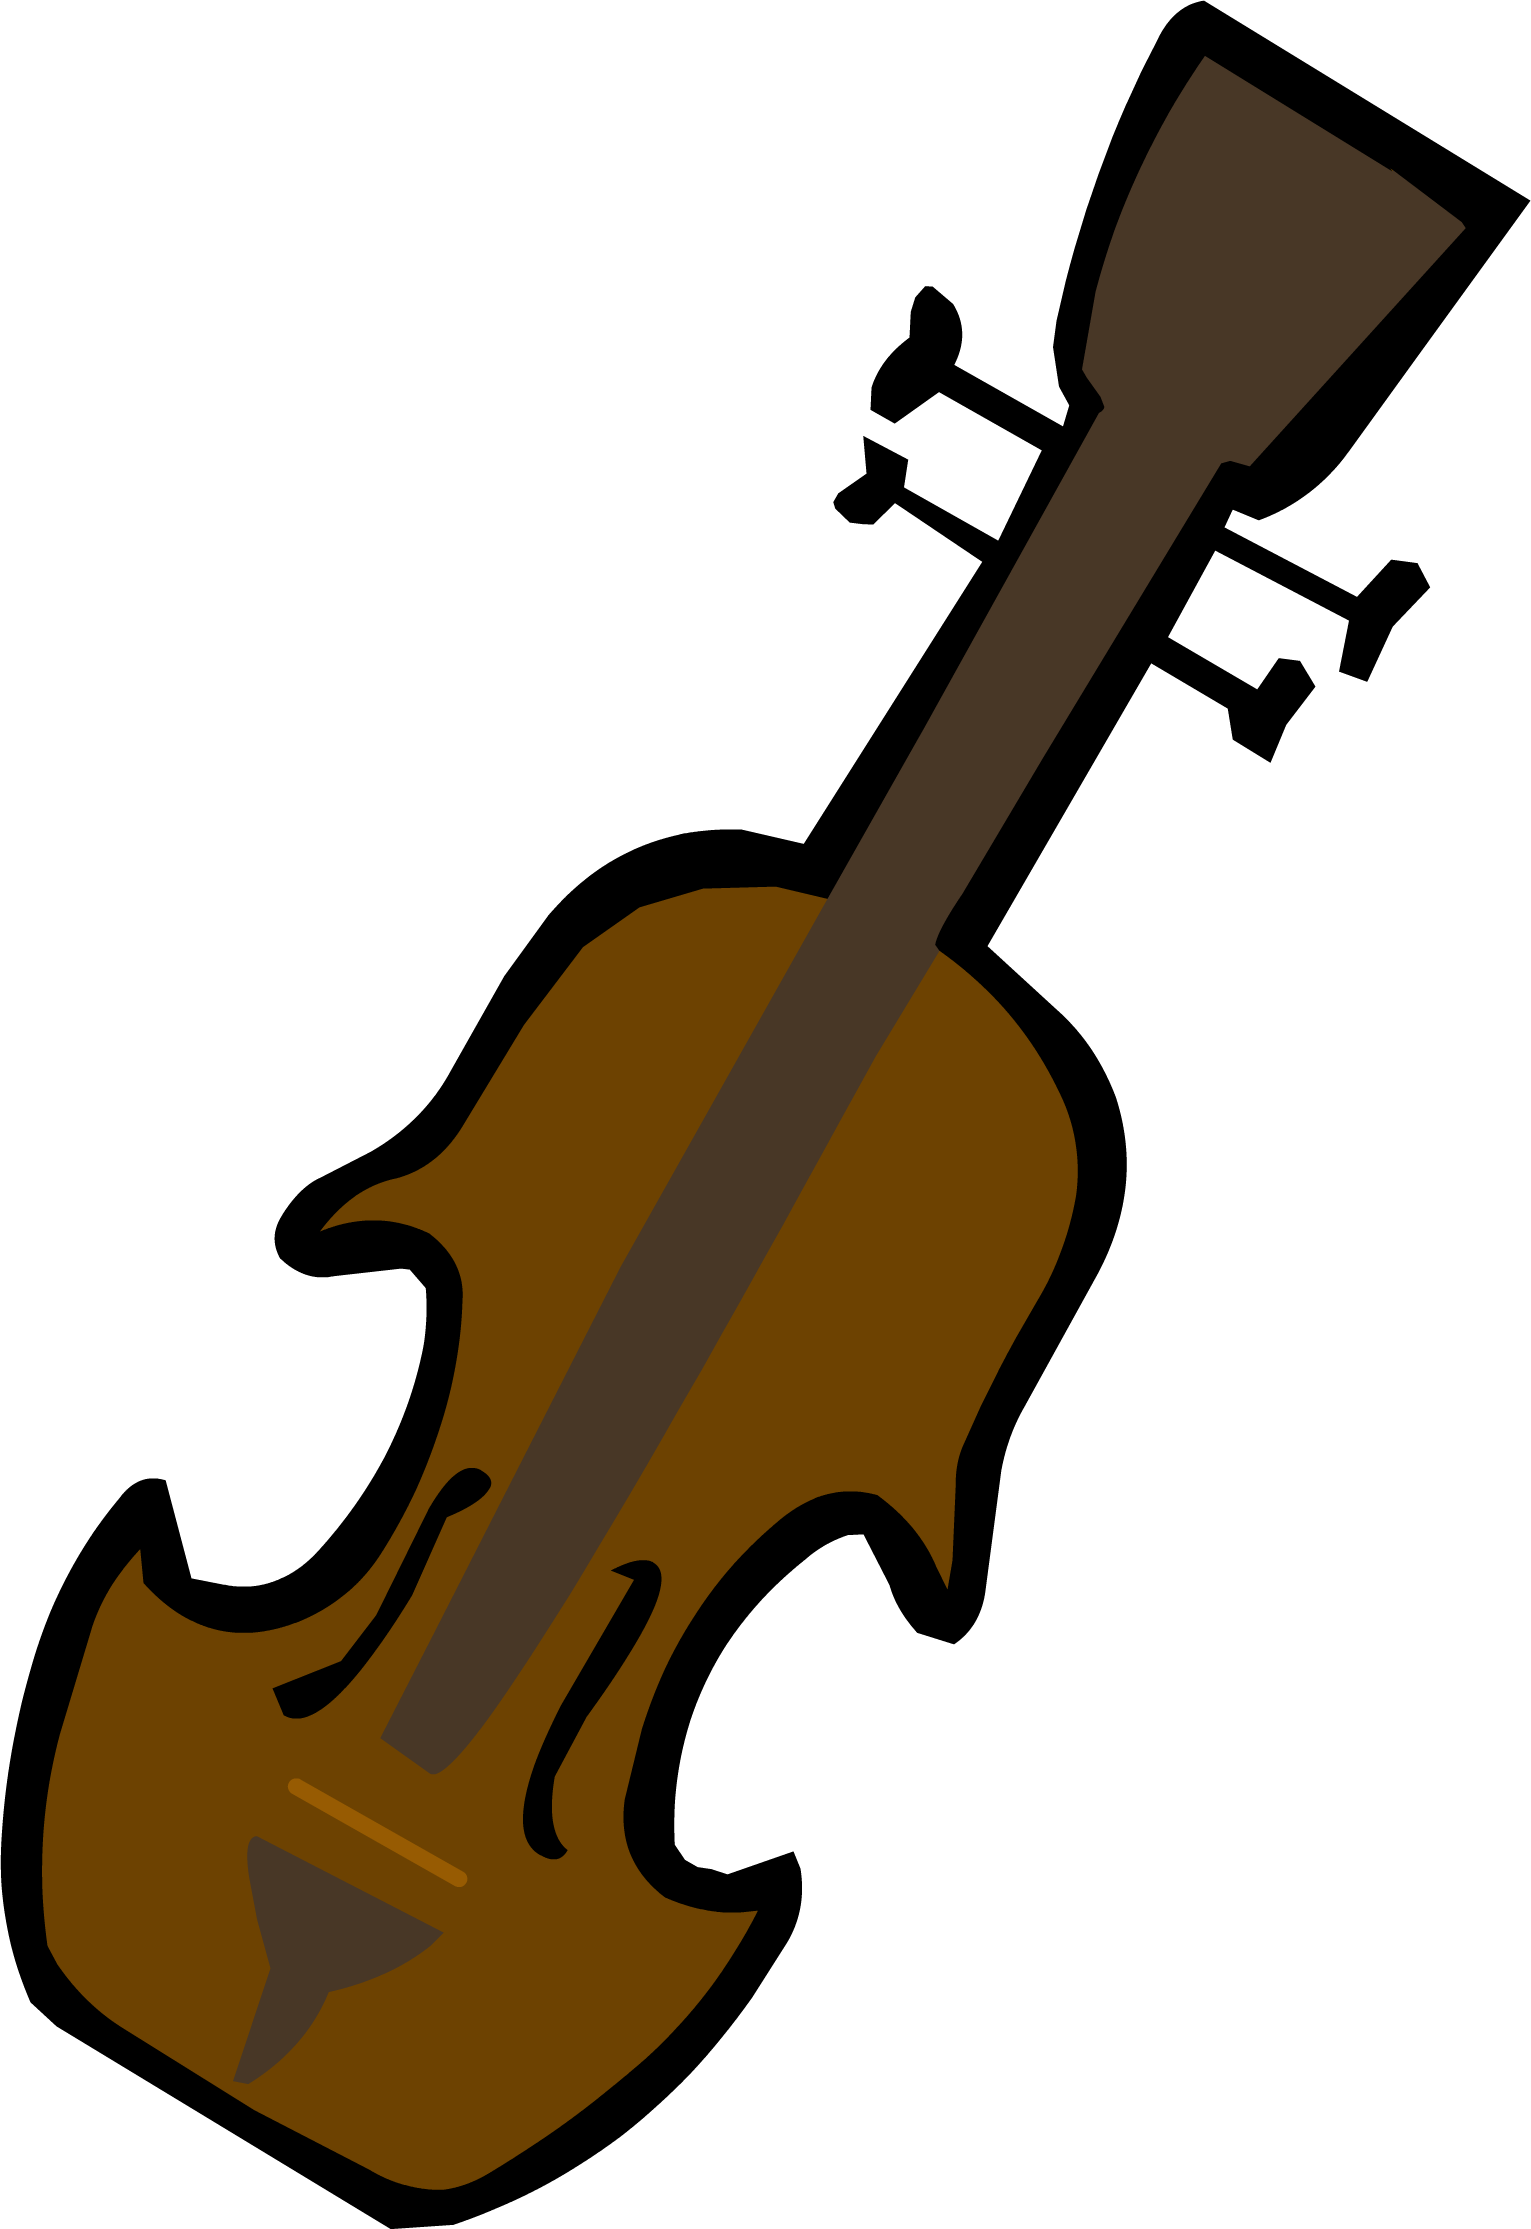 Image violin png club. Musician clipart medieval